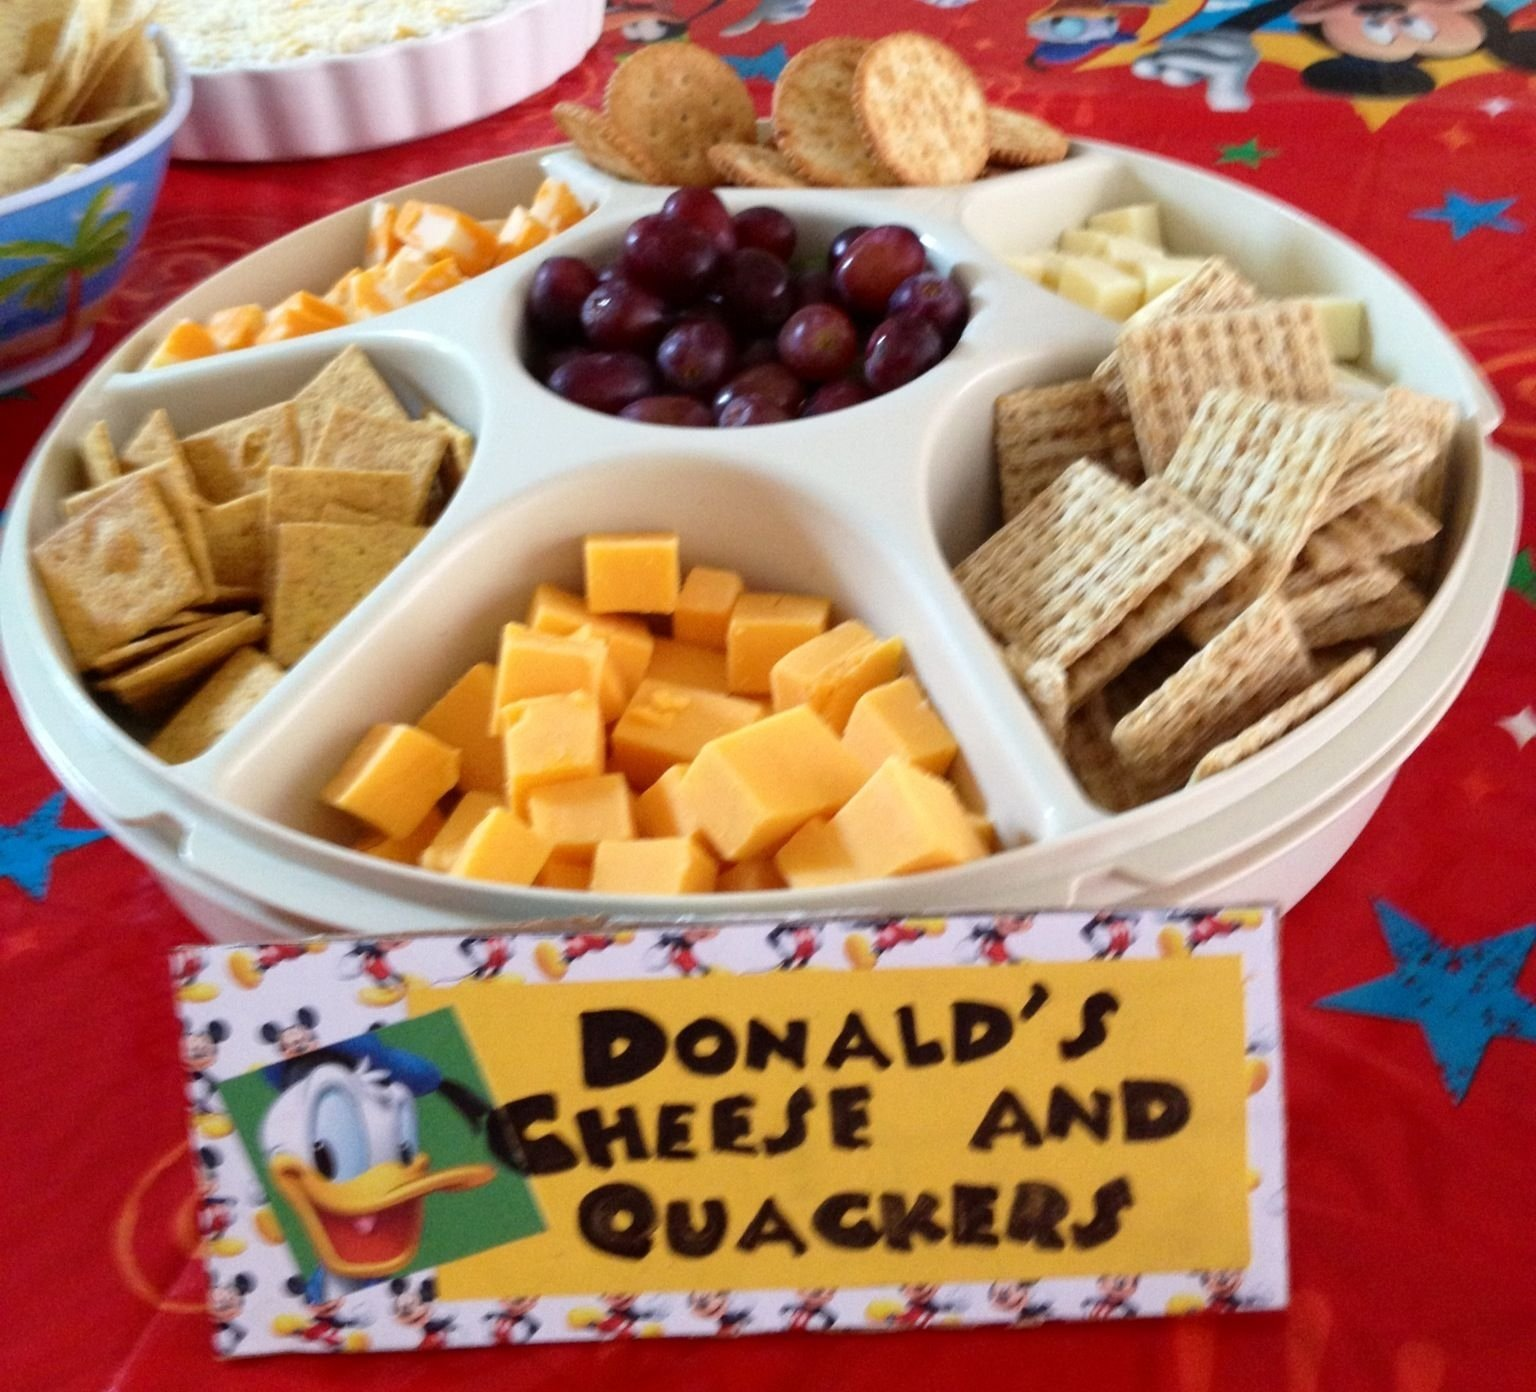 10 Stylish Mickey Mouse Clubhouse Party Food Ideas donalds cheese and quackers kids party pinterest birthday 1 2020